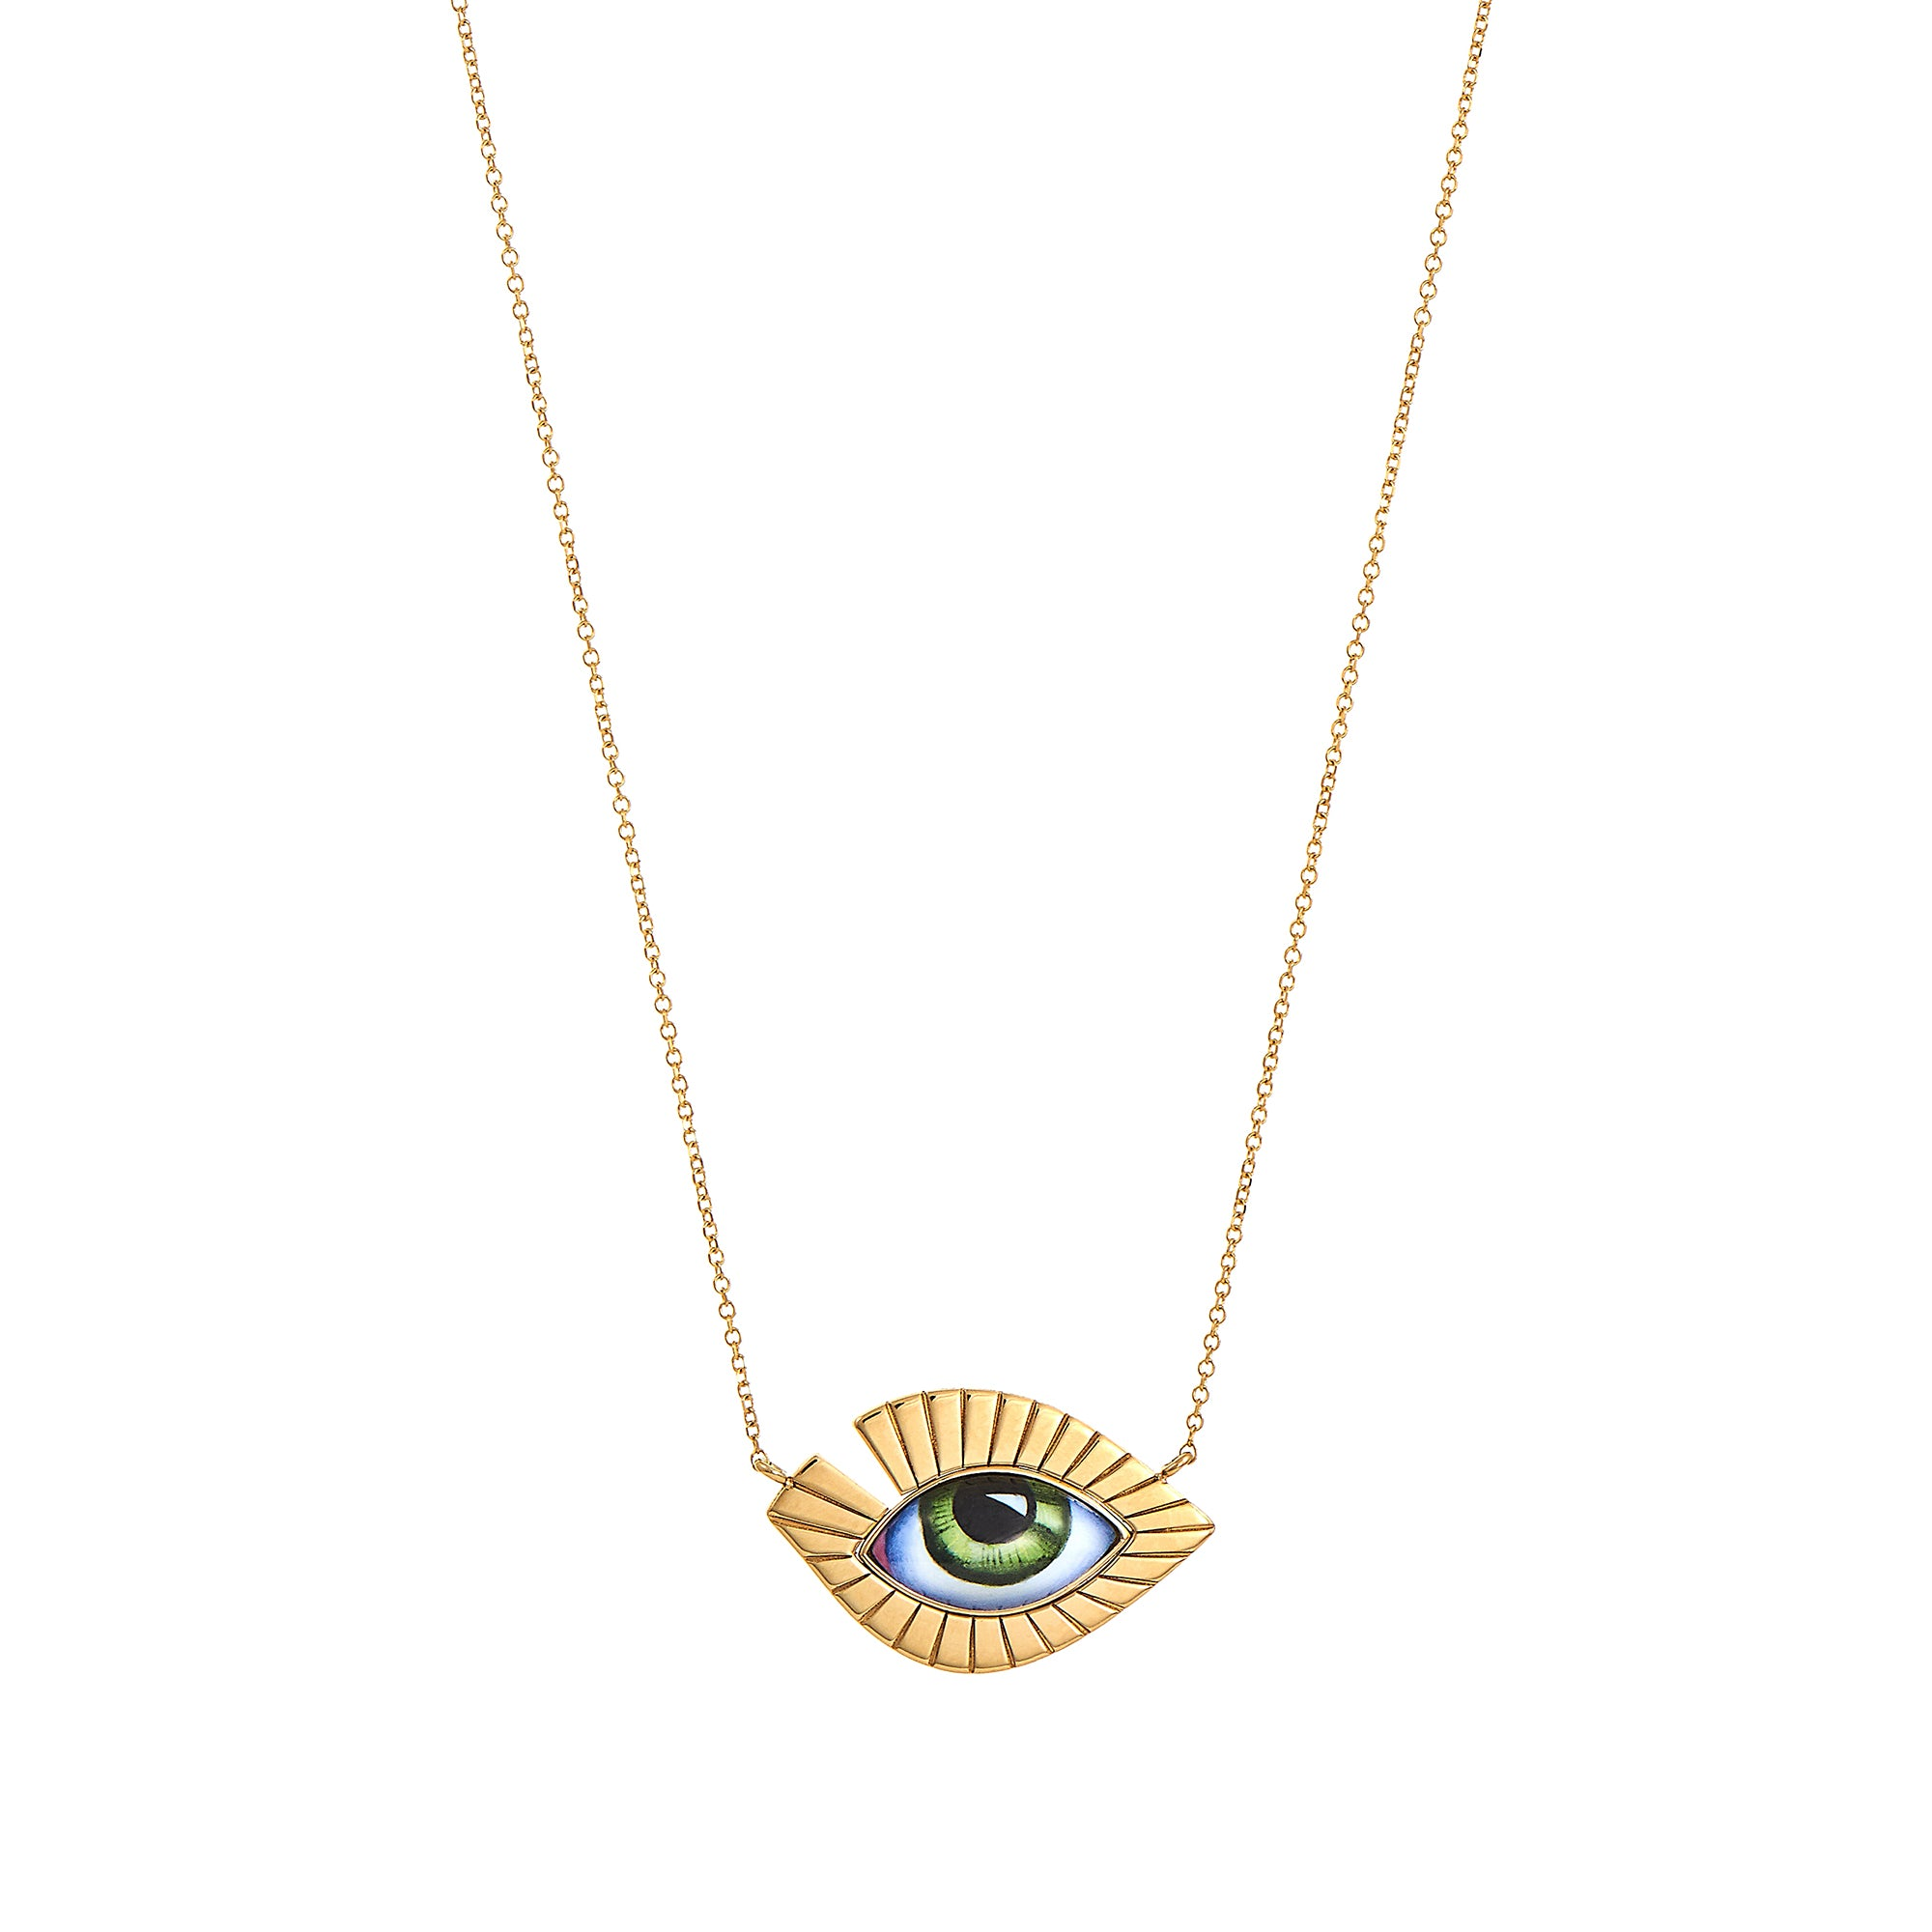 Green Eye Volume Lash Necklace - Lito - Necklace | Broken English Jewelry